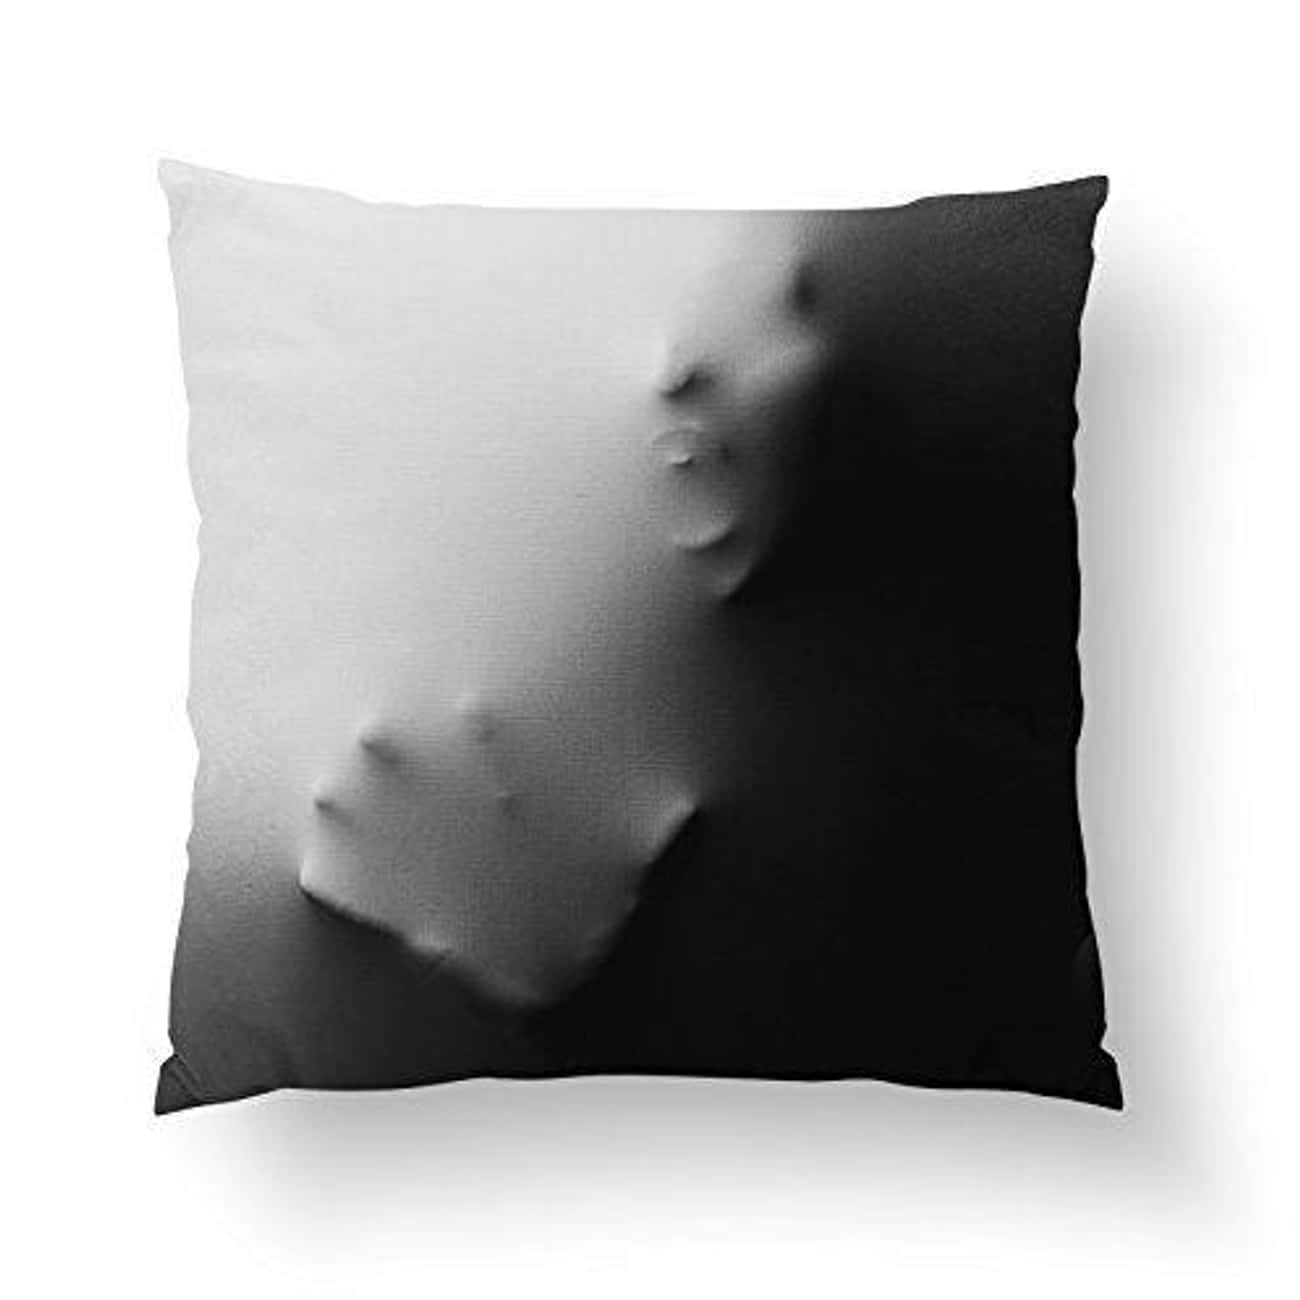 Poltergeist Pillow Cover is listed (or ranked) 1 on the list Unusual Gifts Perfect For People Who Love Any And All Things Creepy